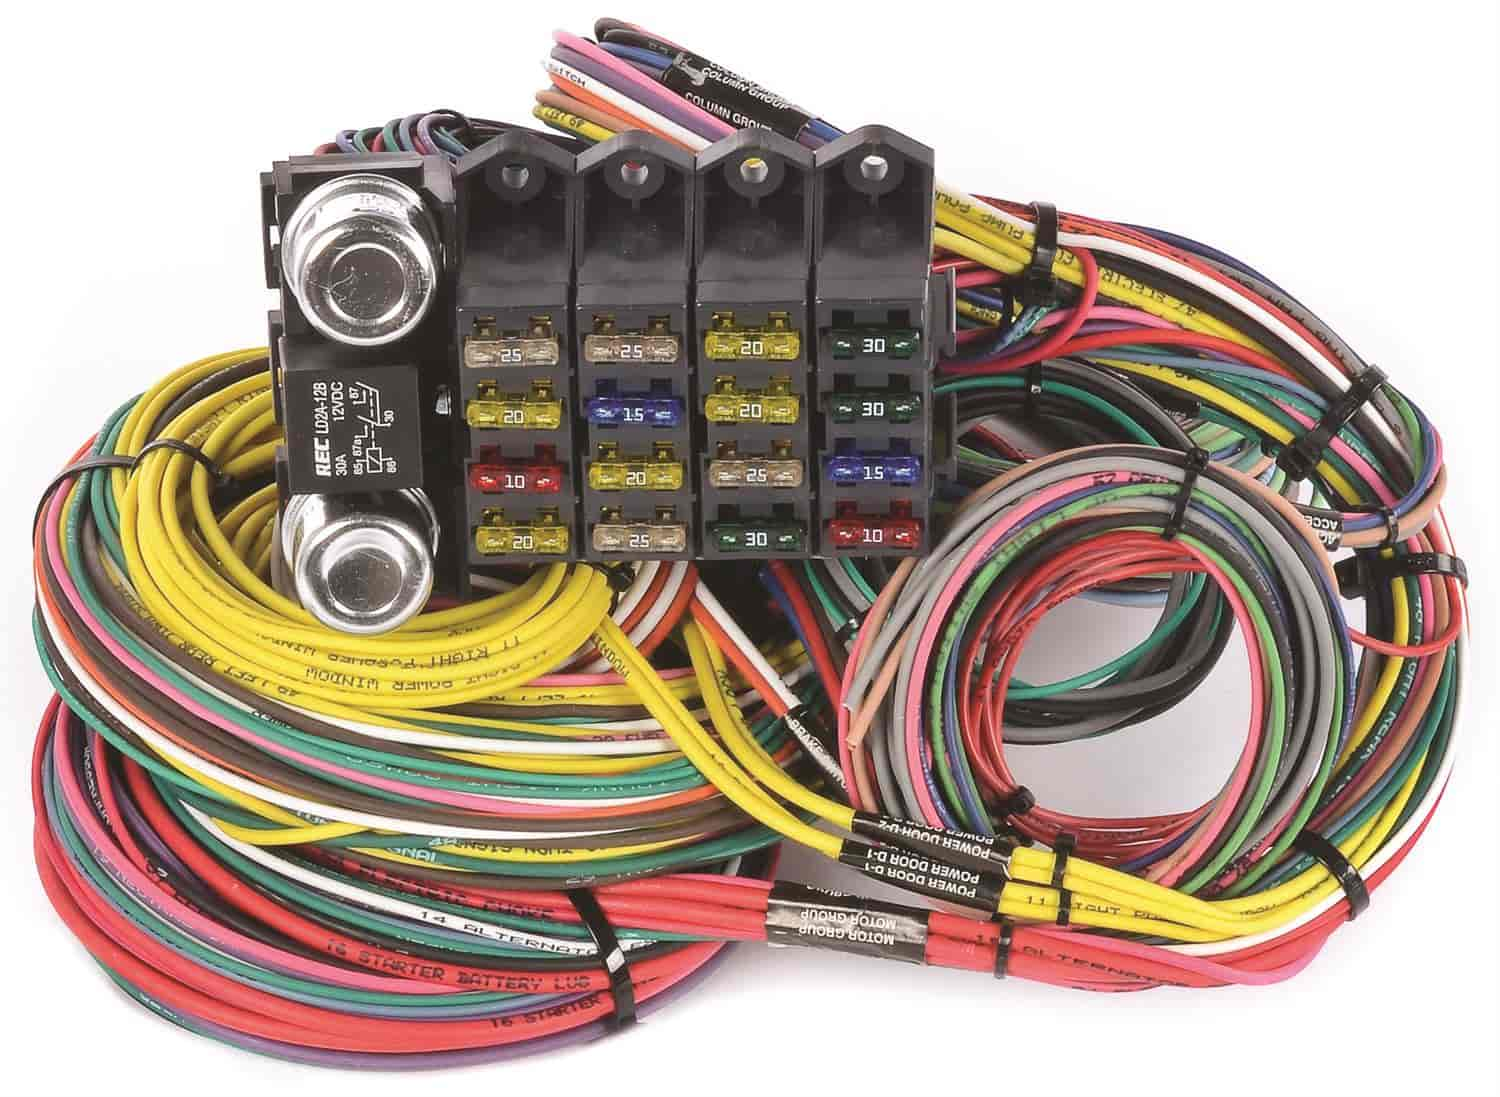 555 10405 jegs performance products 10405 universal wiring harness, 20  at virtualis.co